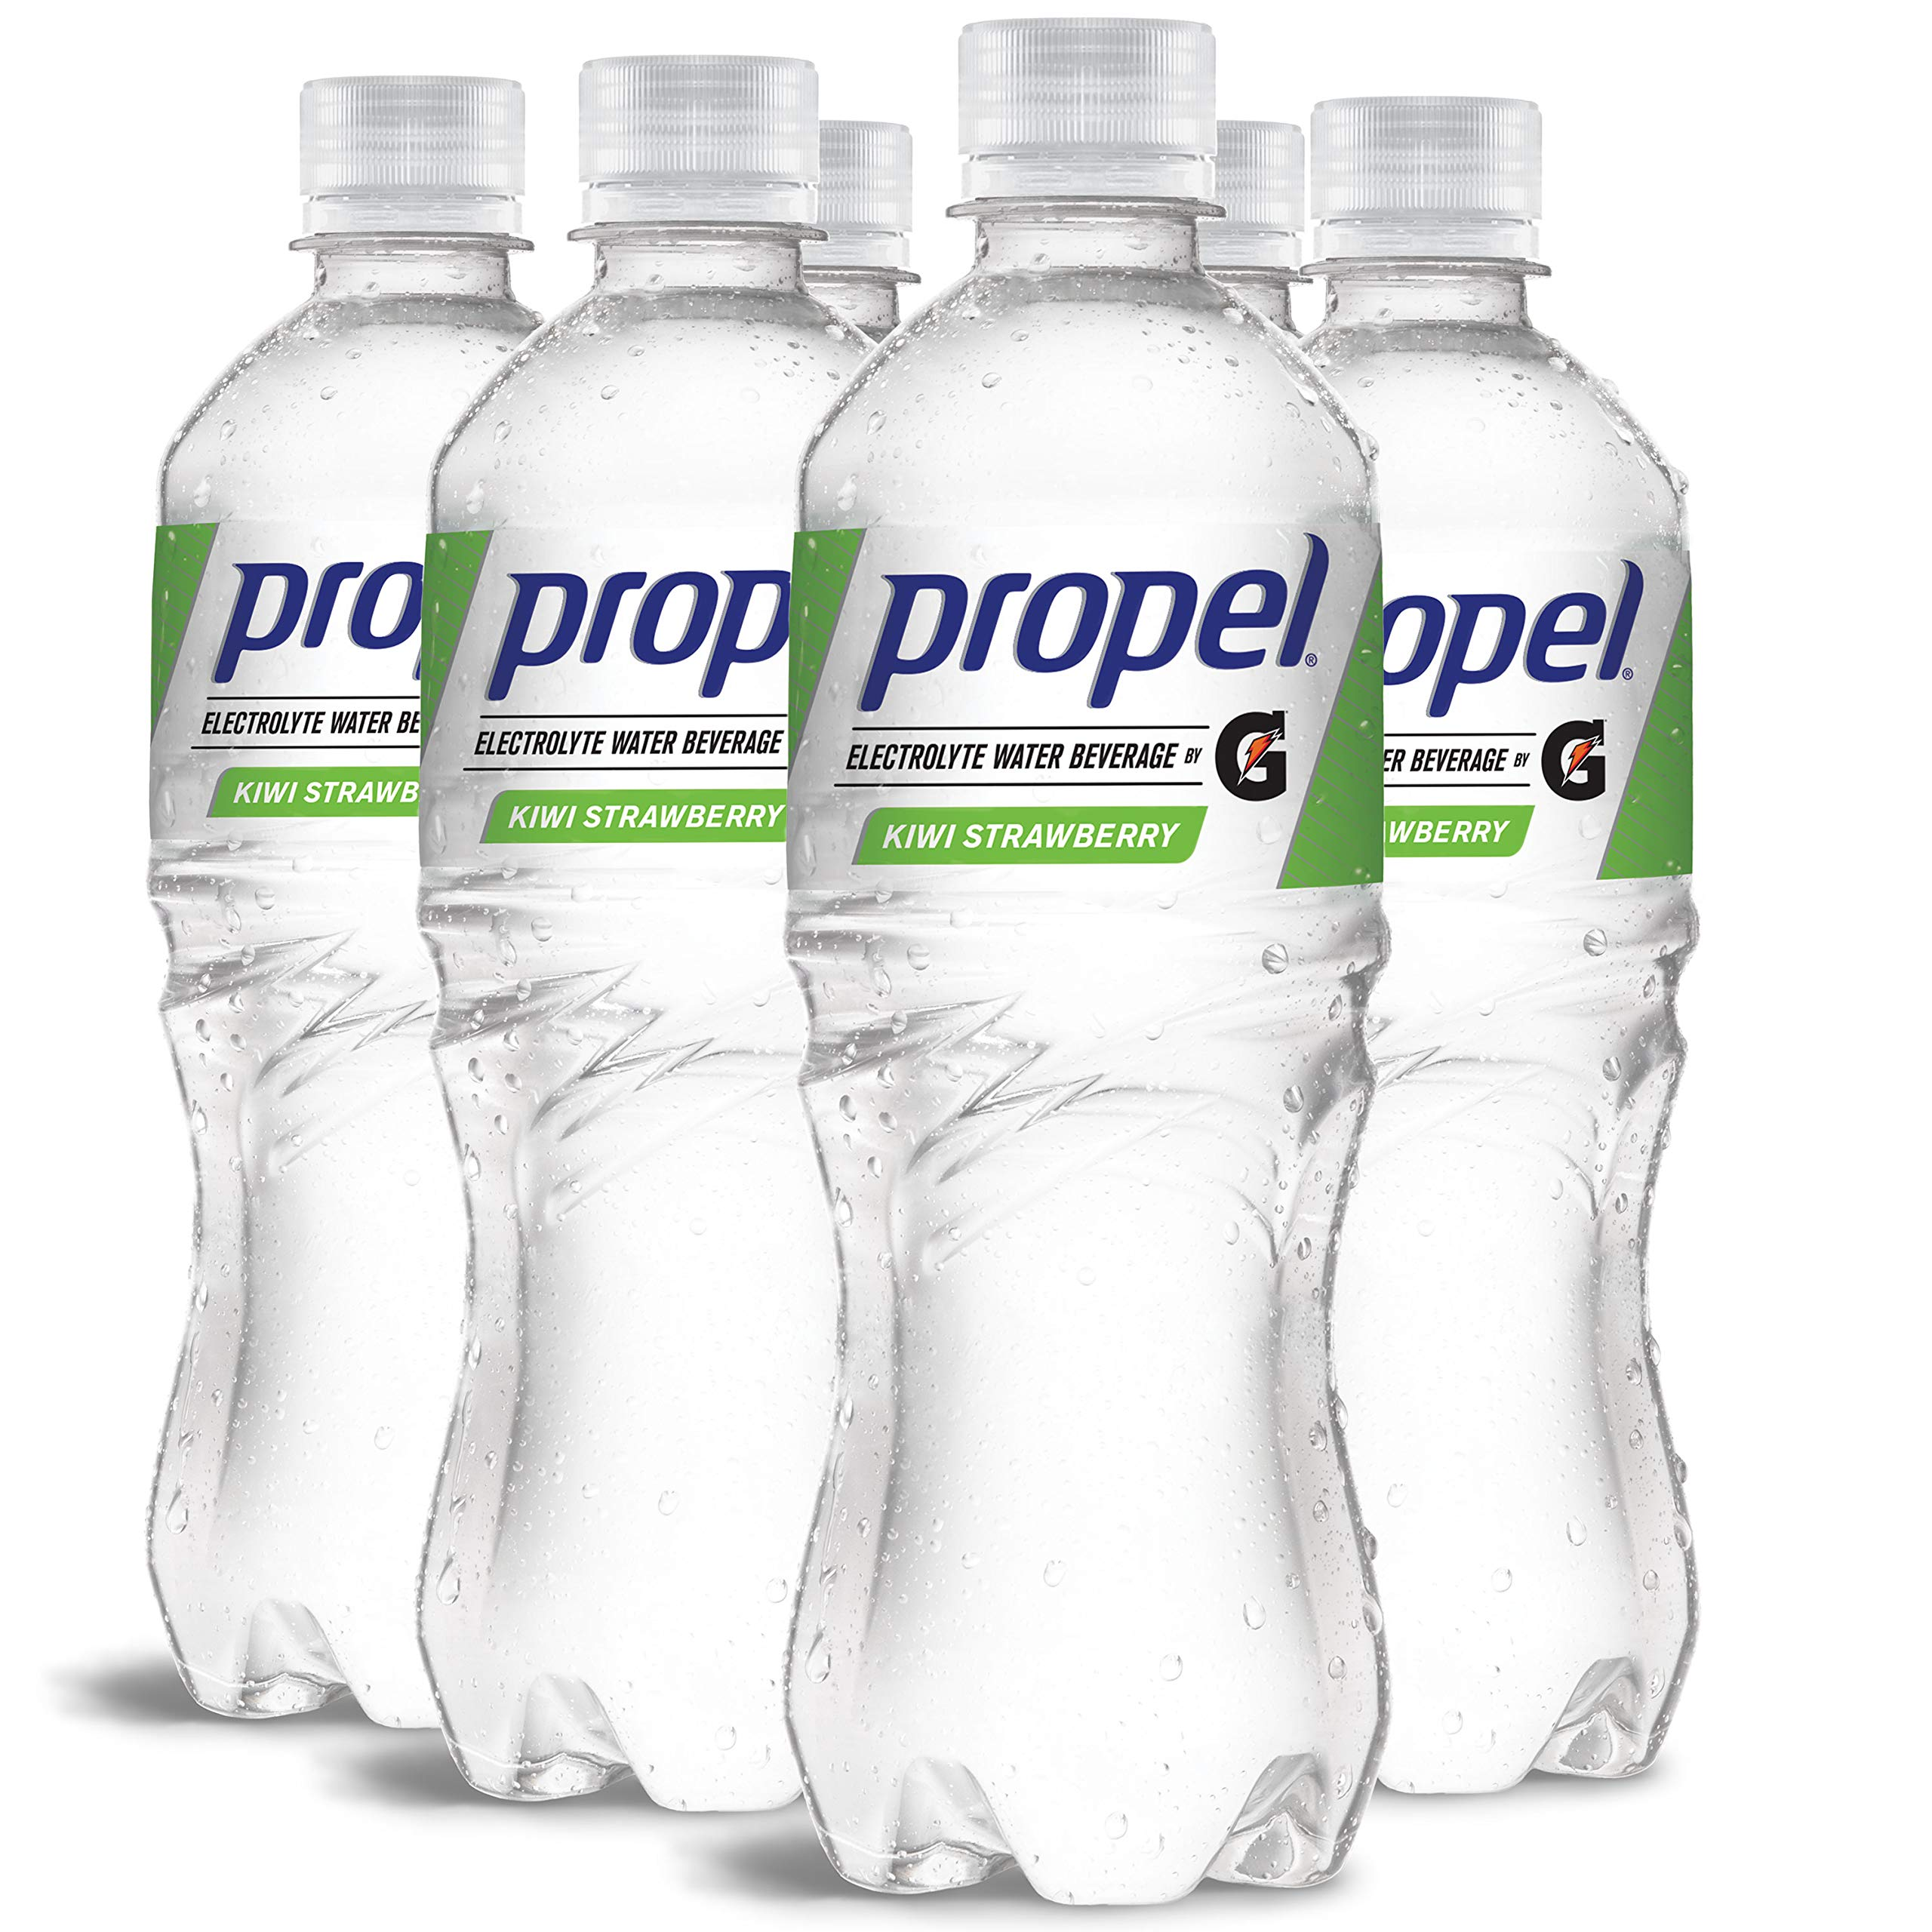 Propel Water Kiwi Strawberry Flavored Water With Electrolytes, Vitamins and No Sugar 16.9 Ounces (Pack of 6)